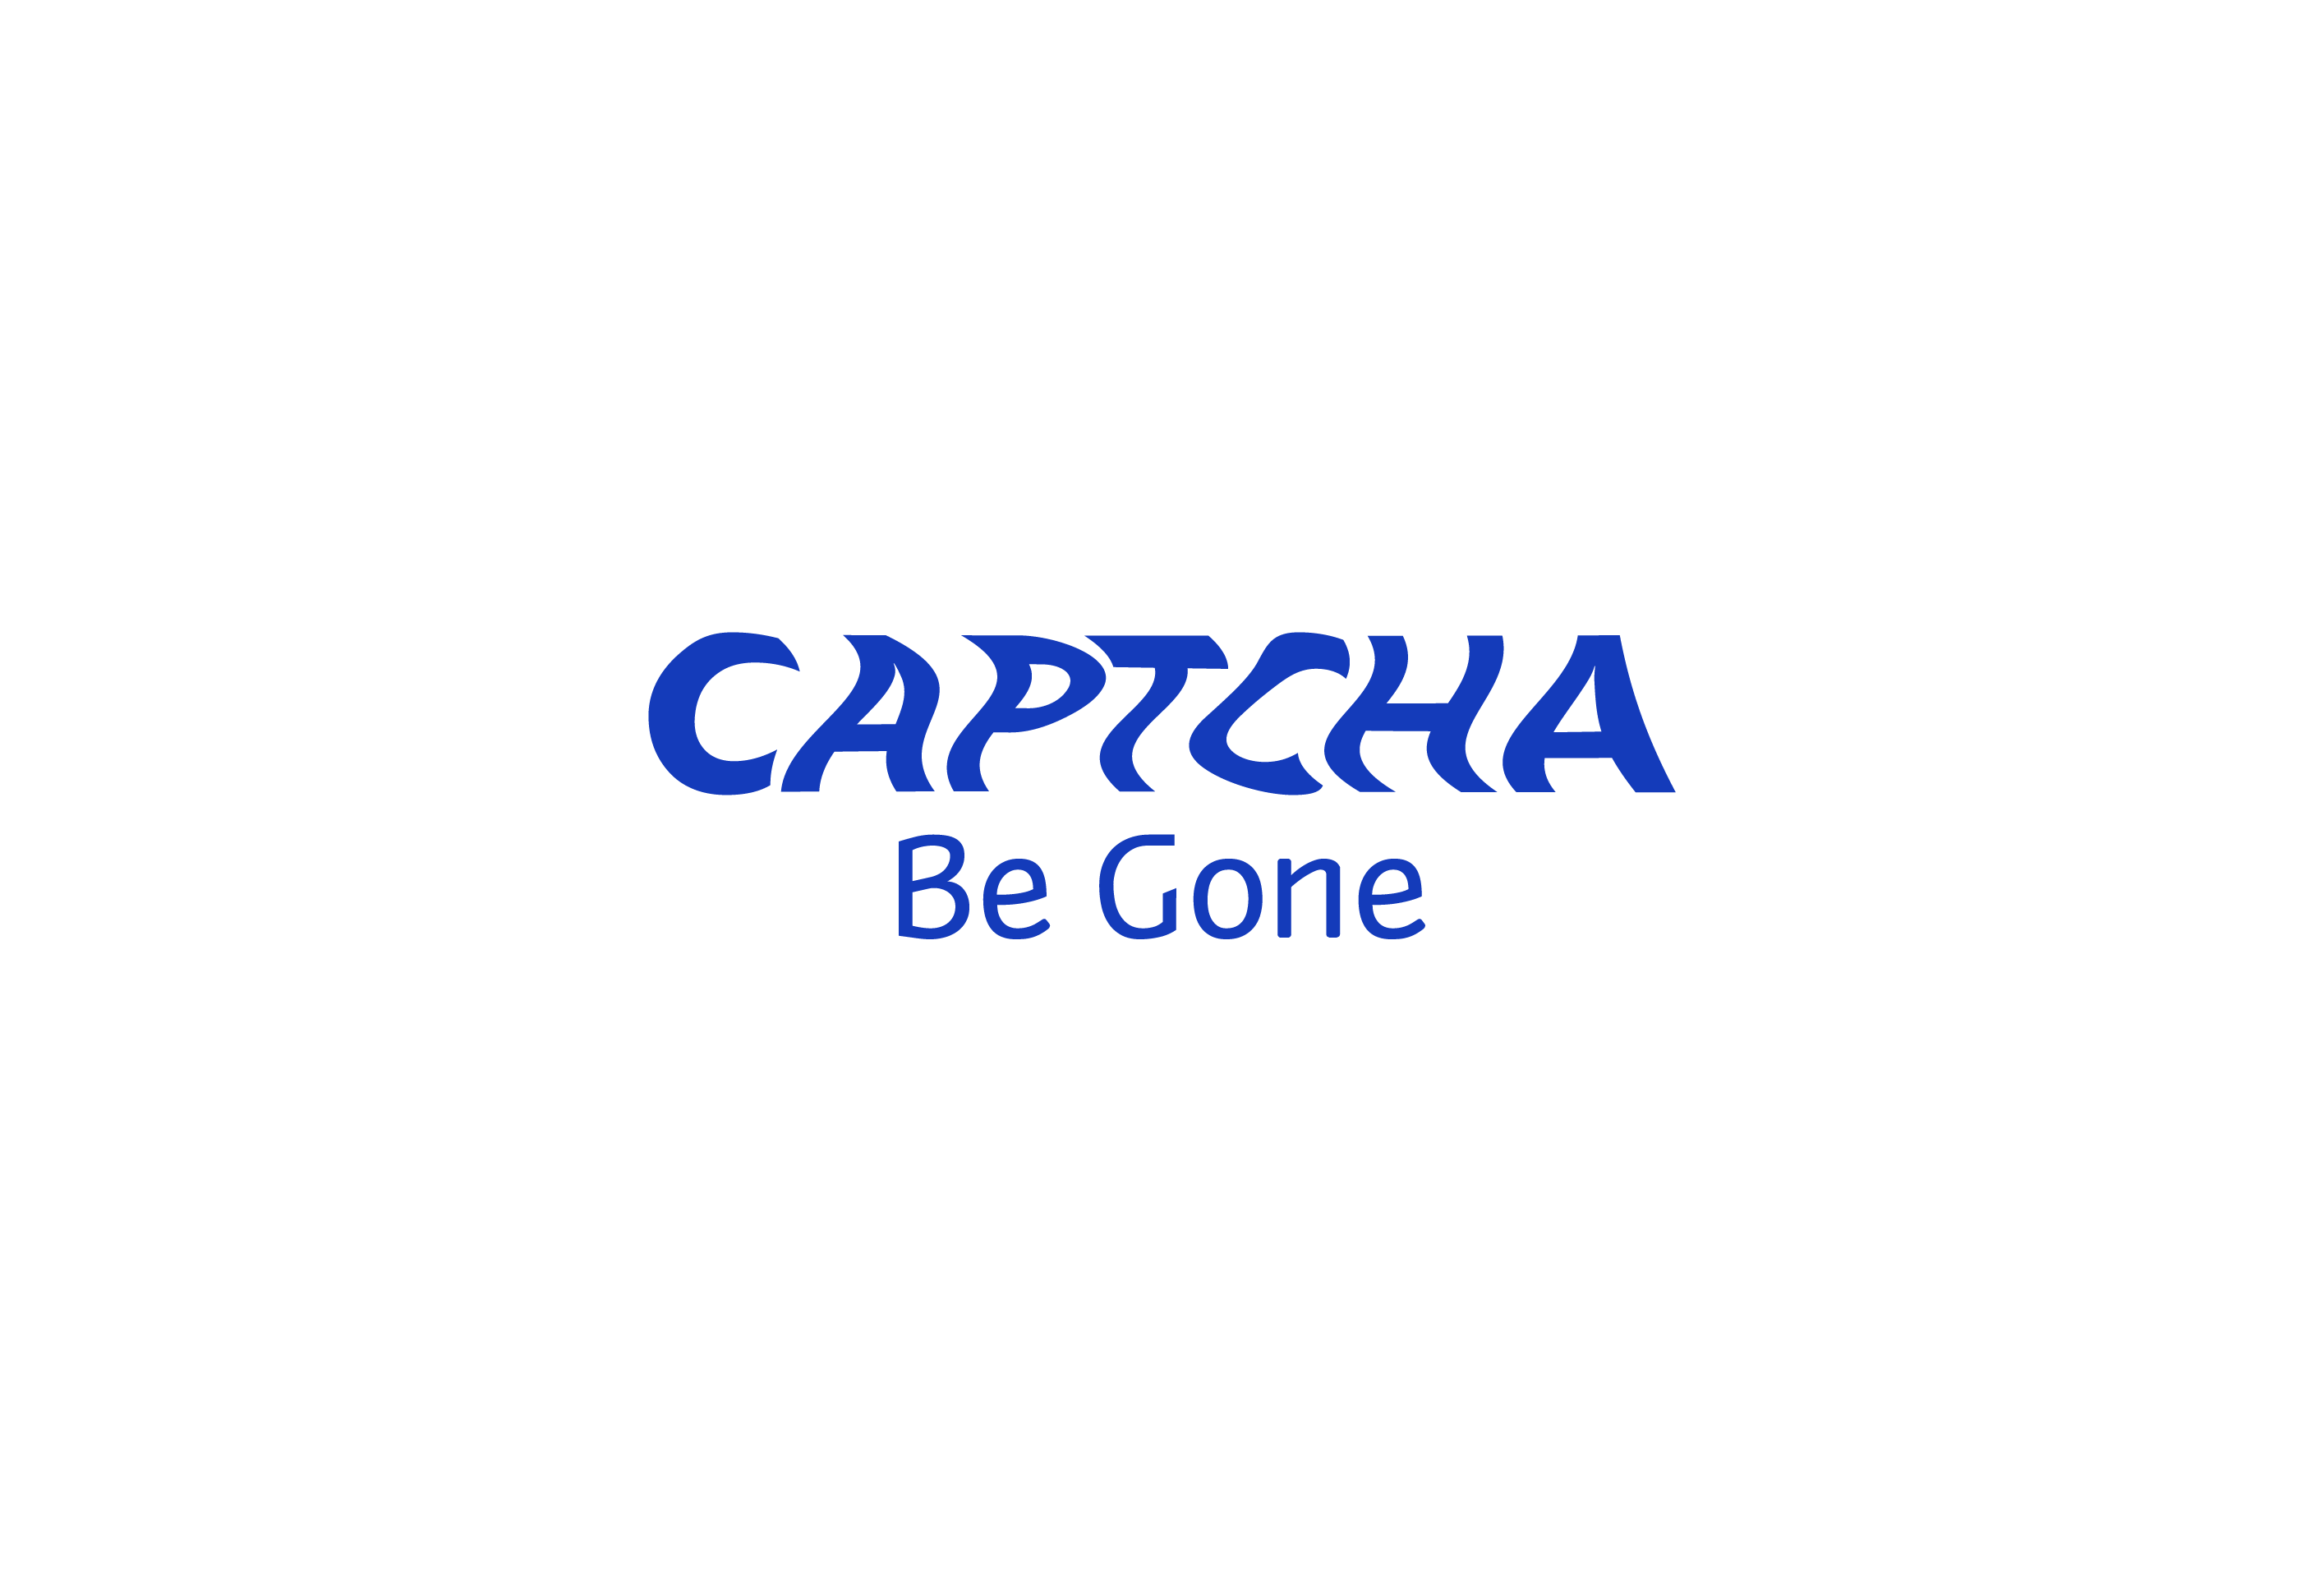 CAPTCHA Be Gone